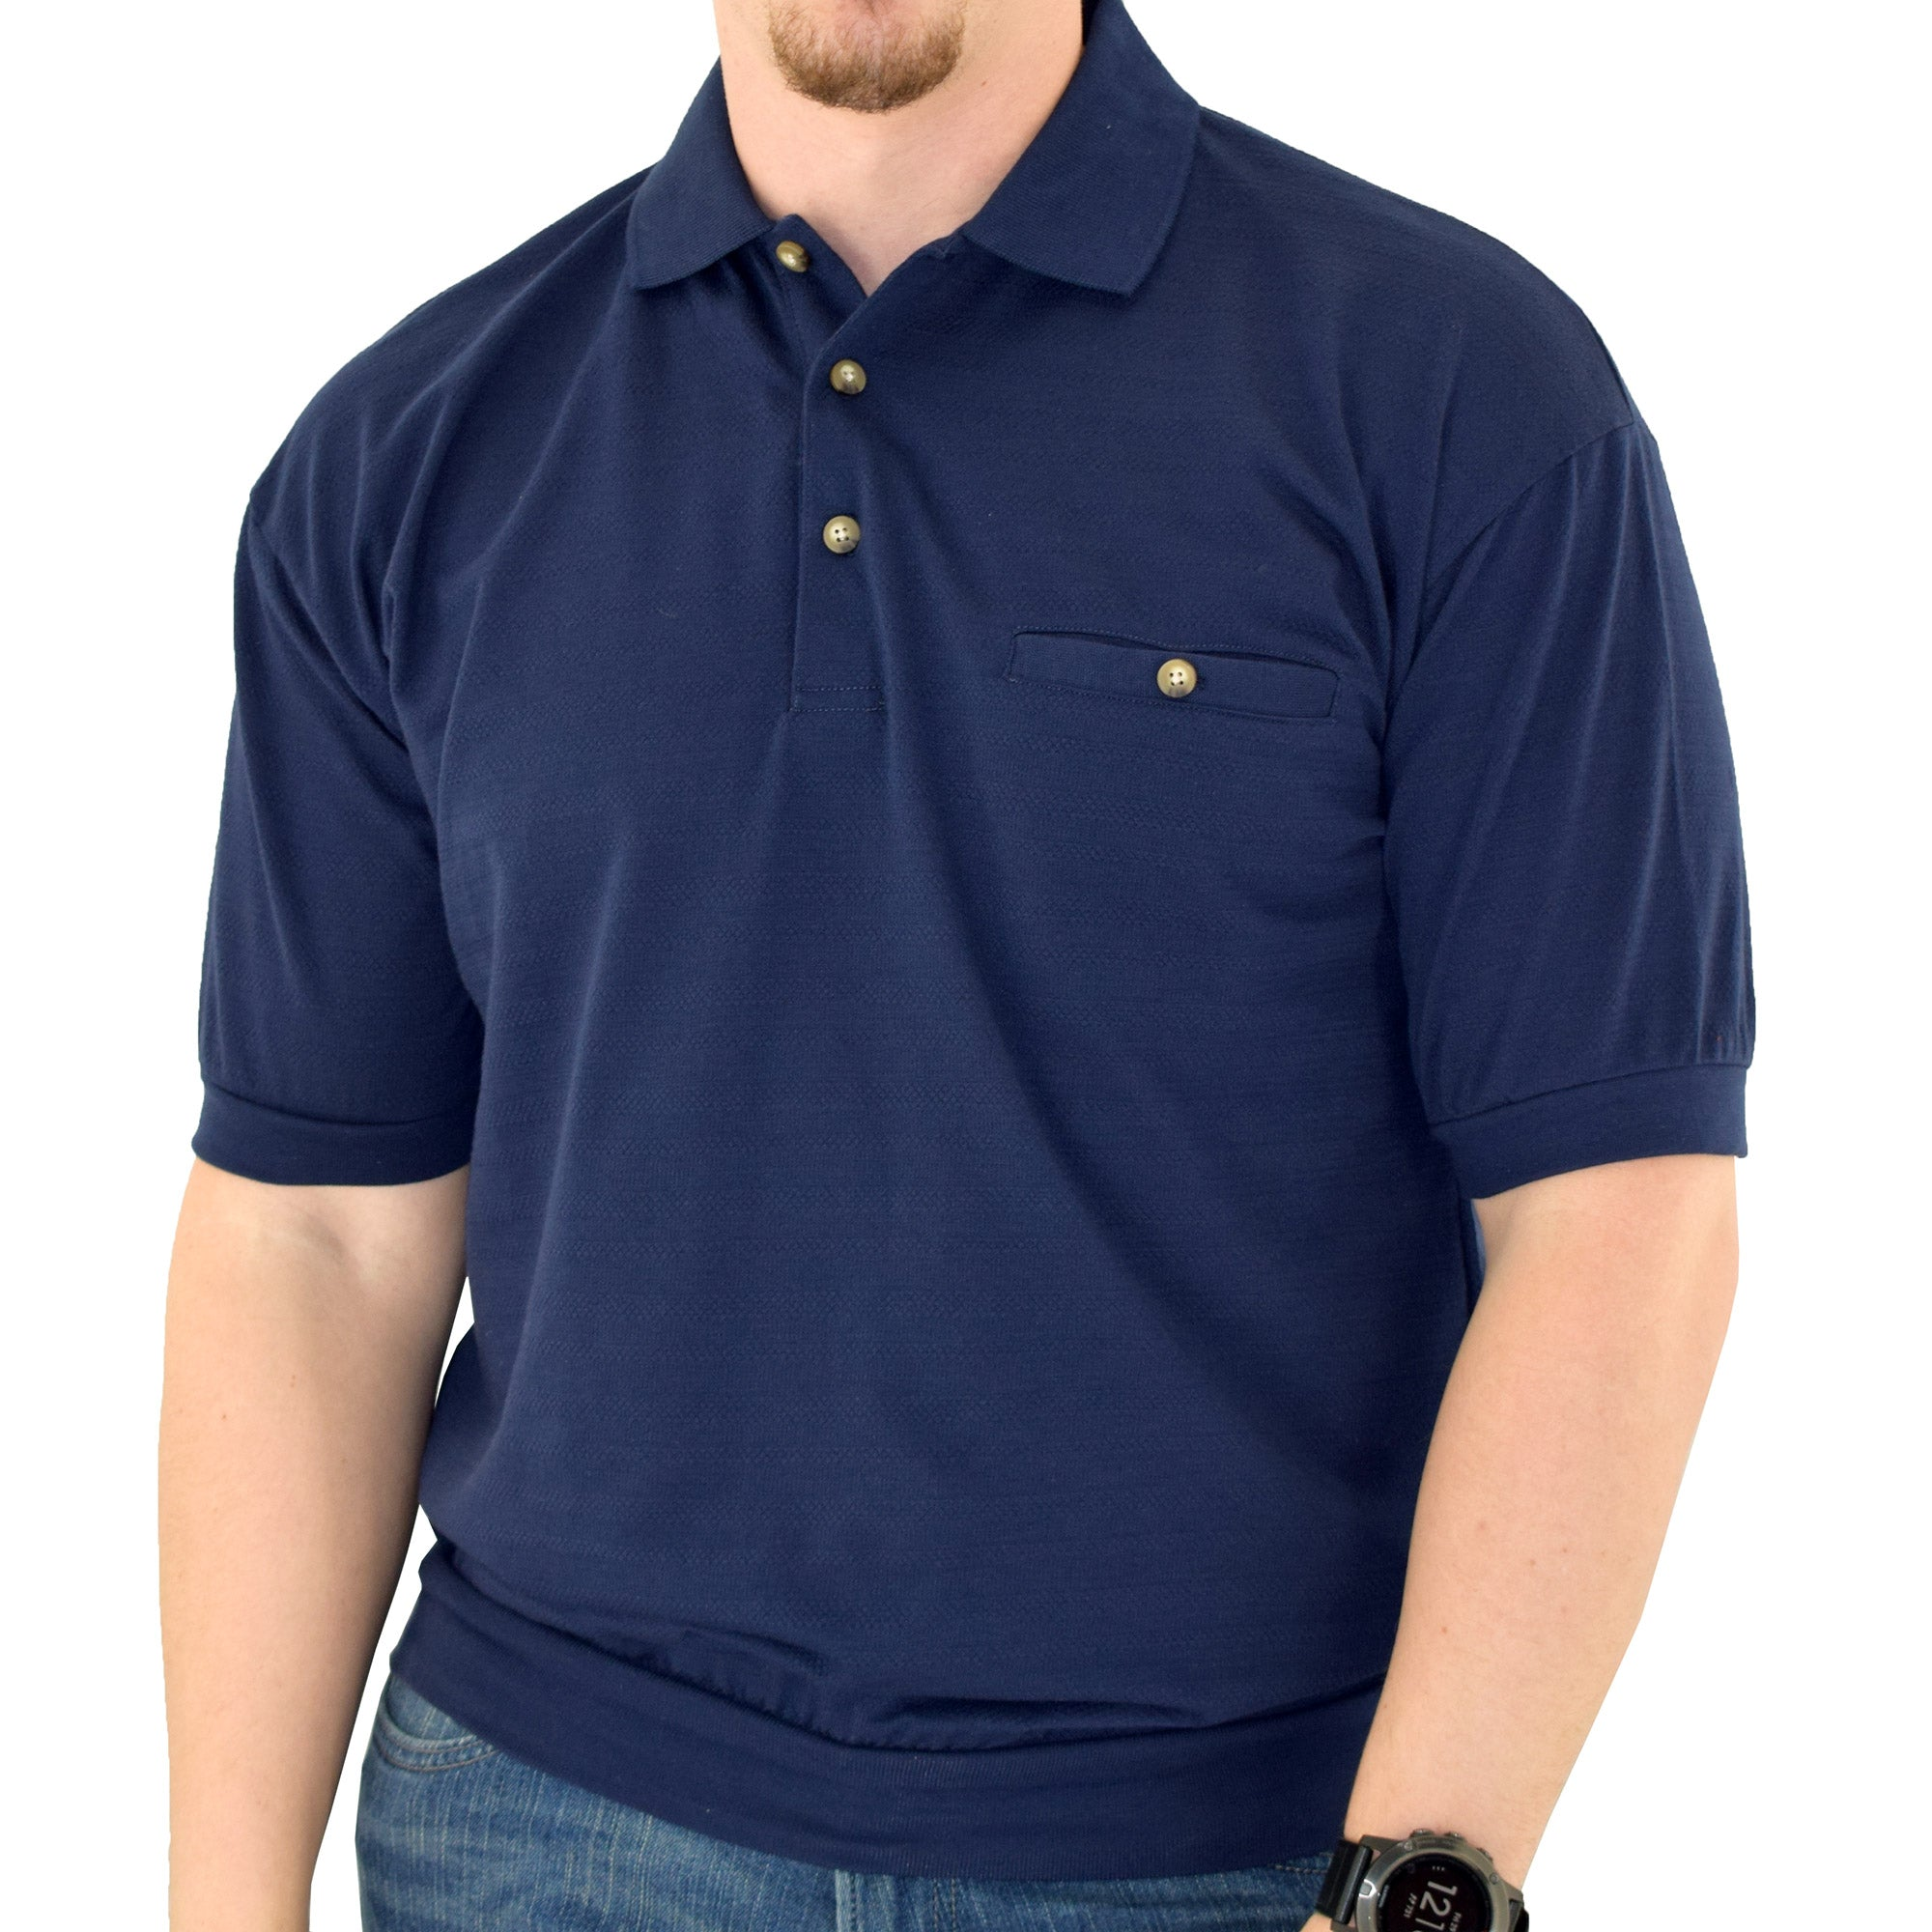 Classics by Palmland Short Sleeve Banded Bottom Shirt 6070-209BT Navy - theflagshirt